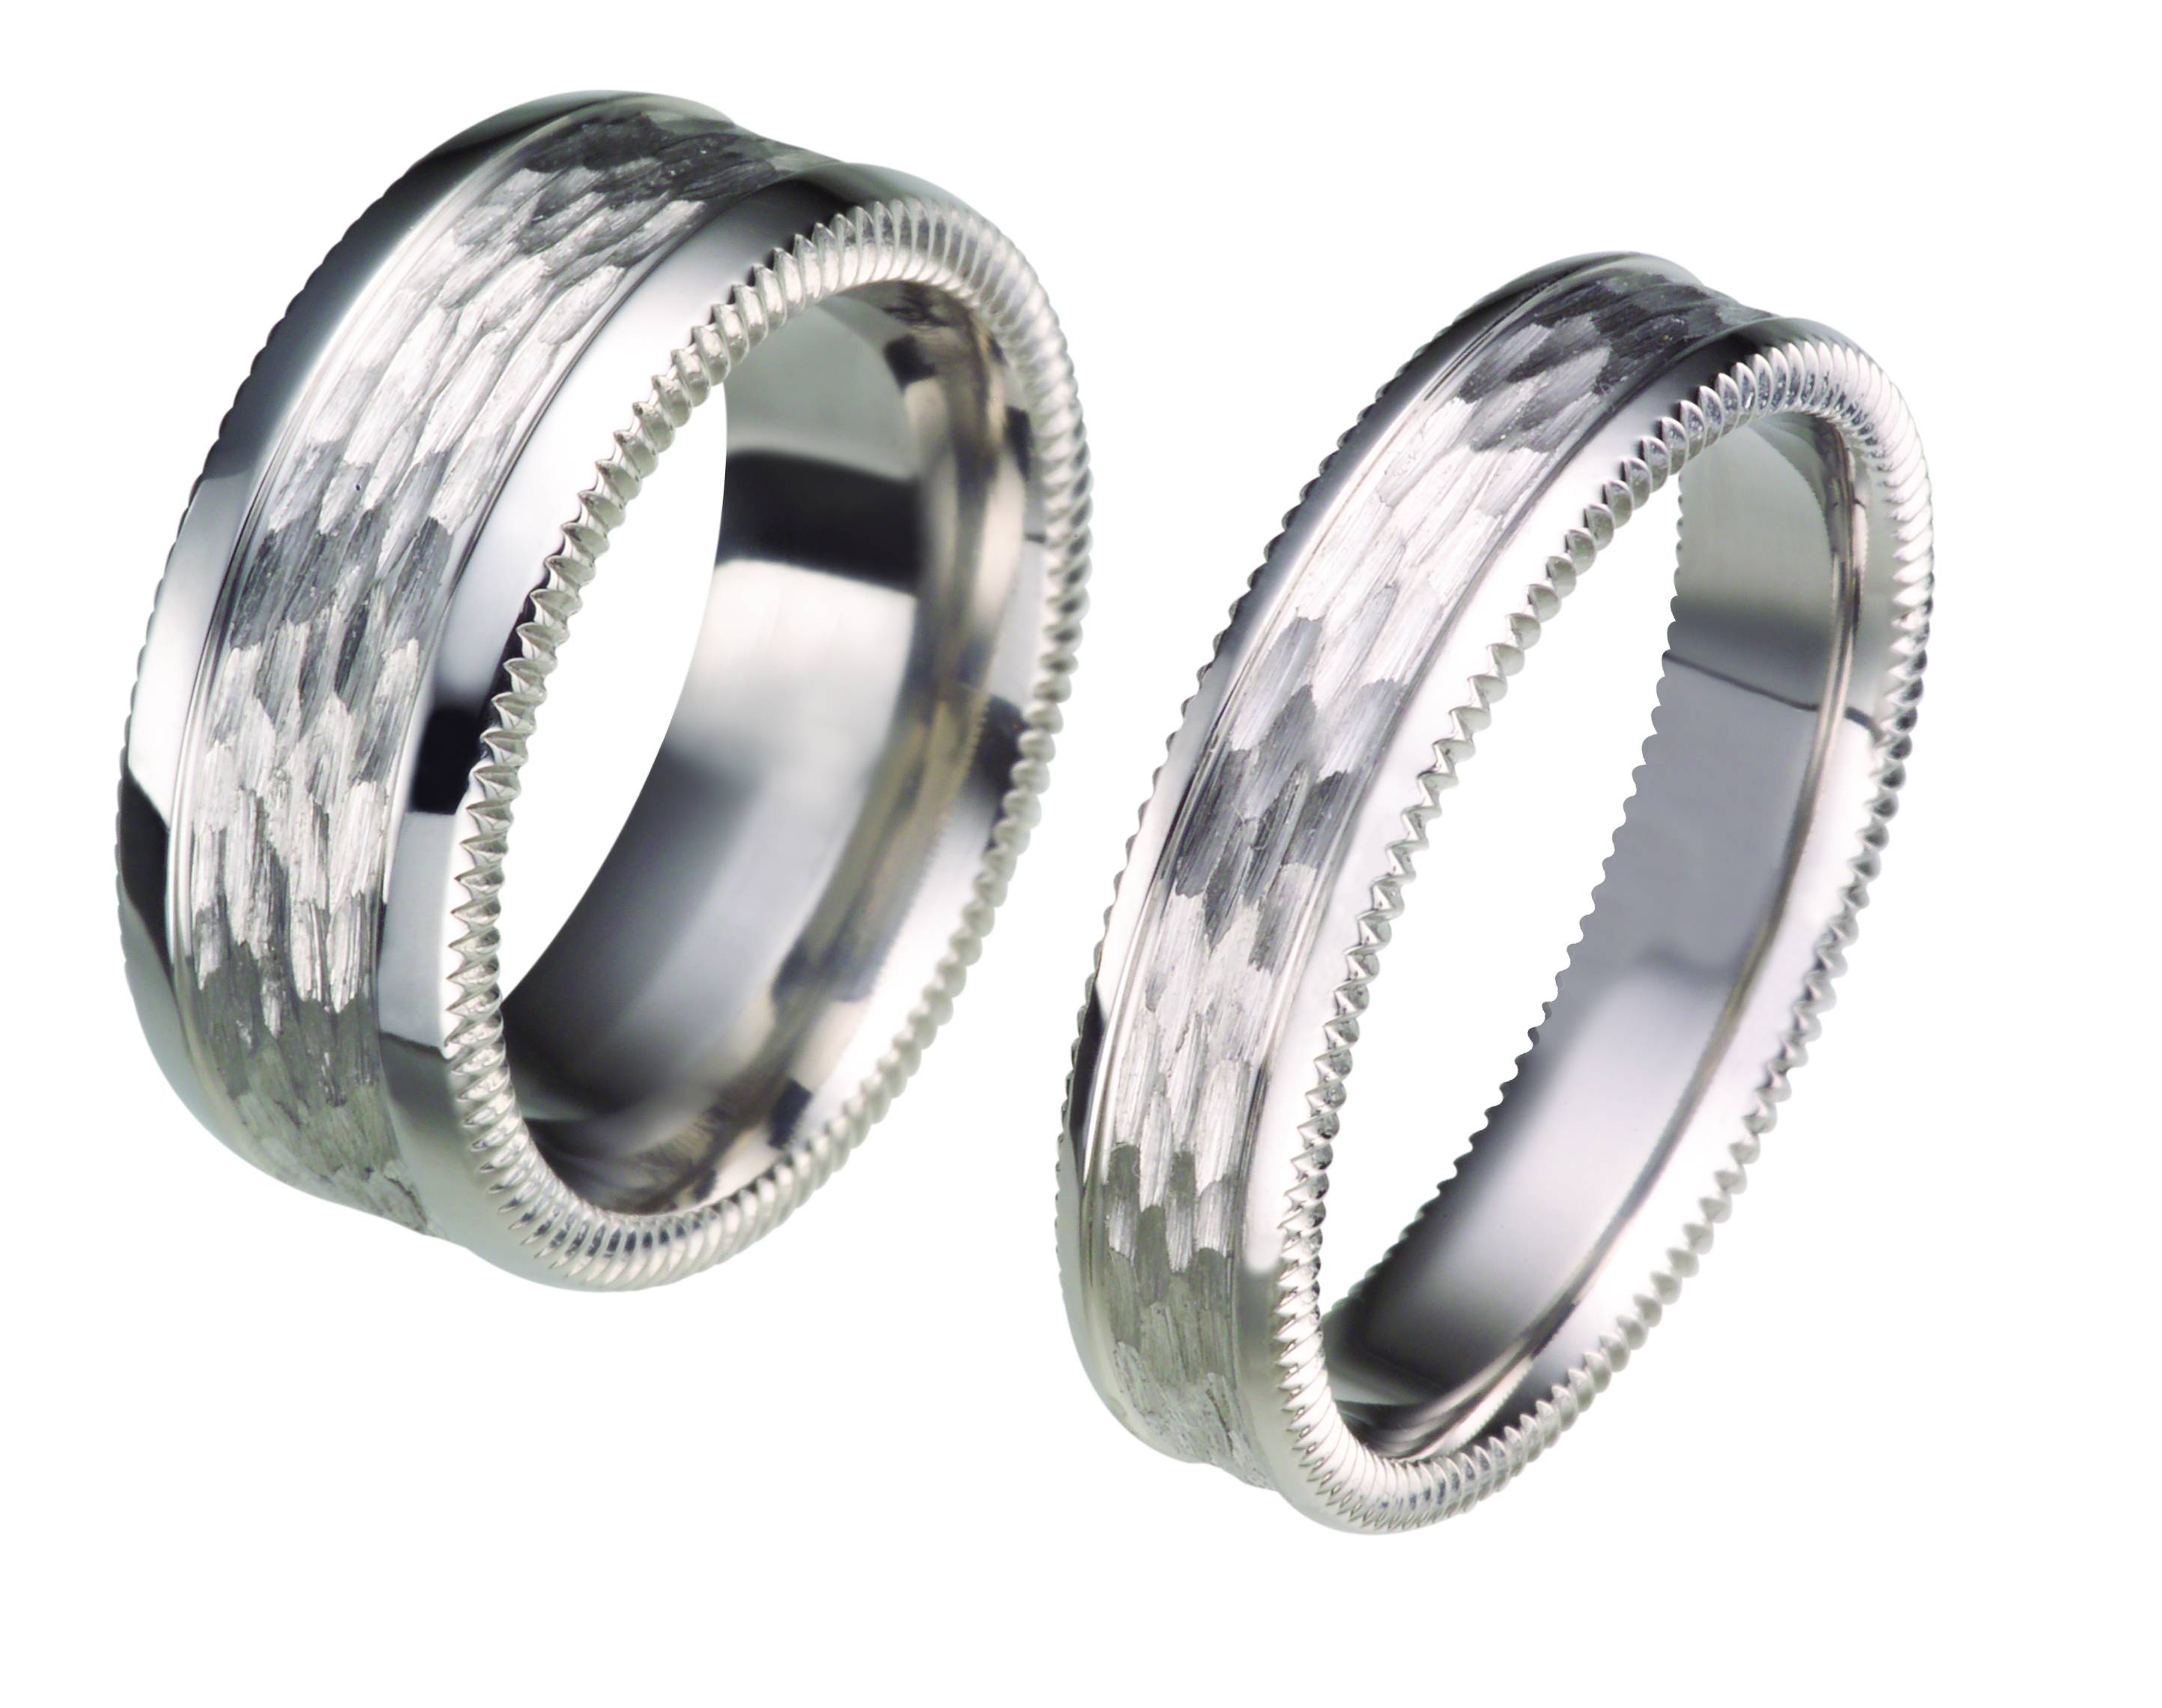 Wedding Rings : Platinum Wedding Bands Black Wedding Bands For Men Regarding Newest Platium Wedding Bands (View 15 of 15)